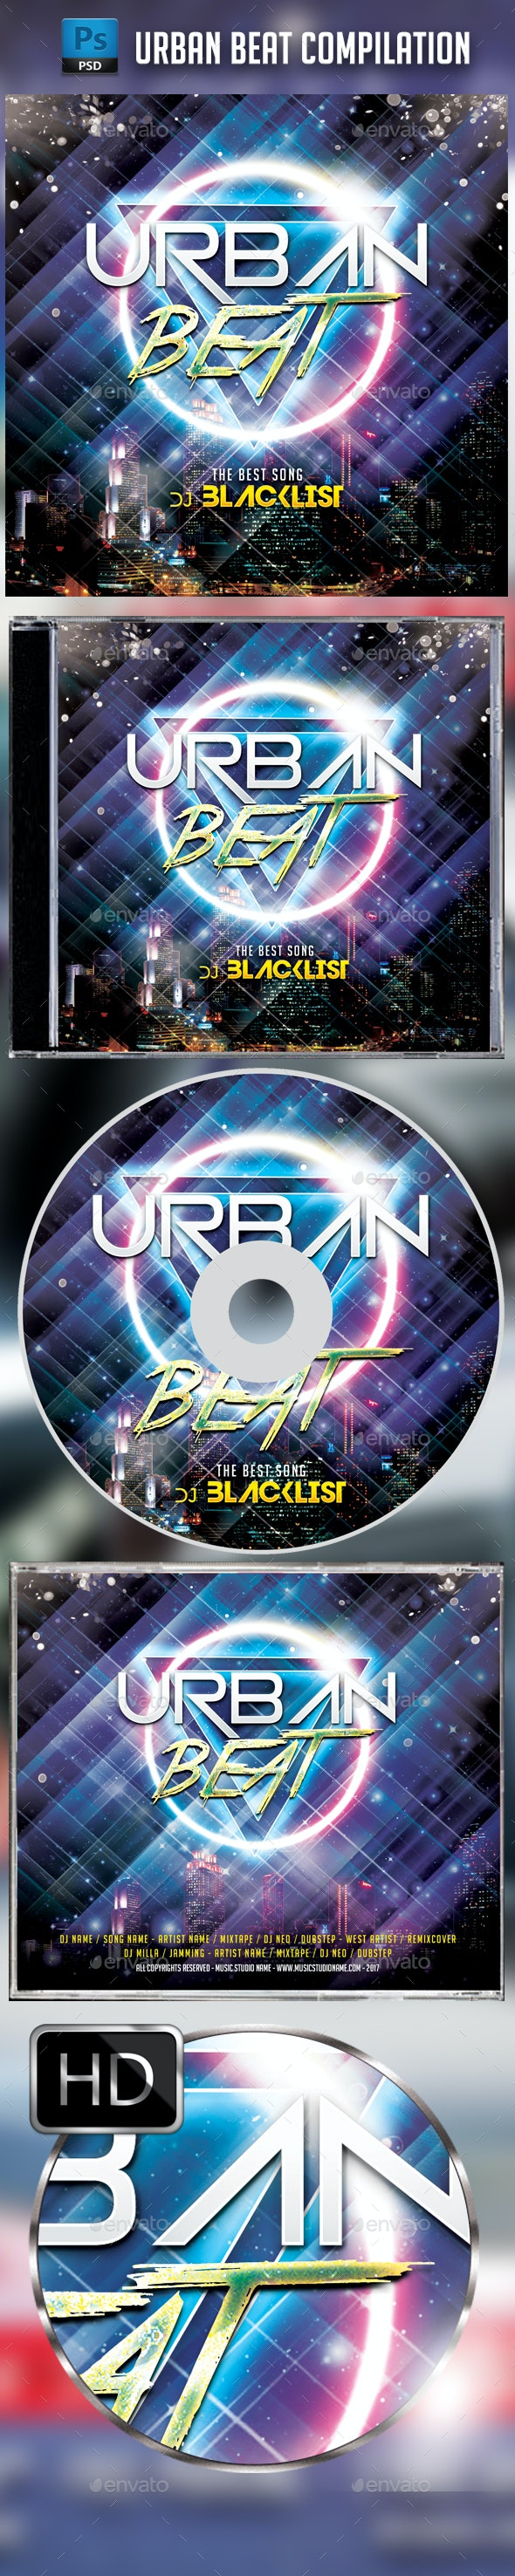 Urban Beat CD Cover Template - CD & DVD Artwork Print Templates